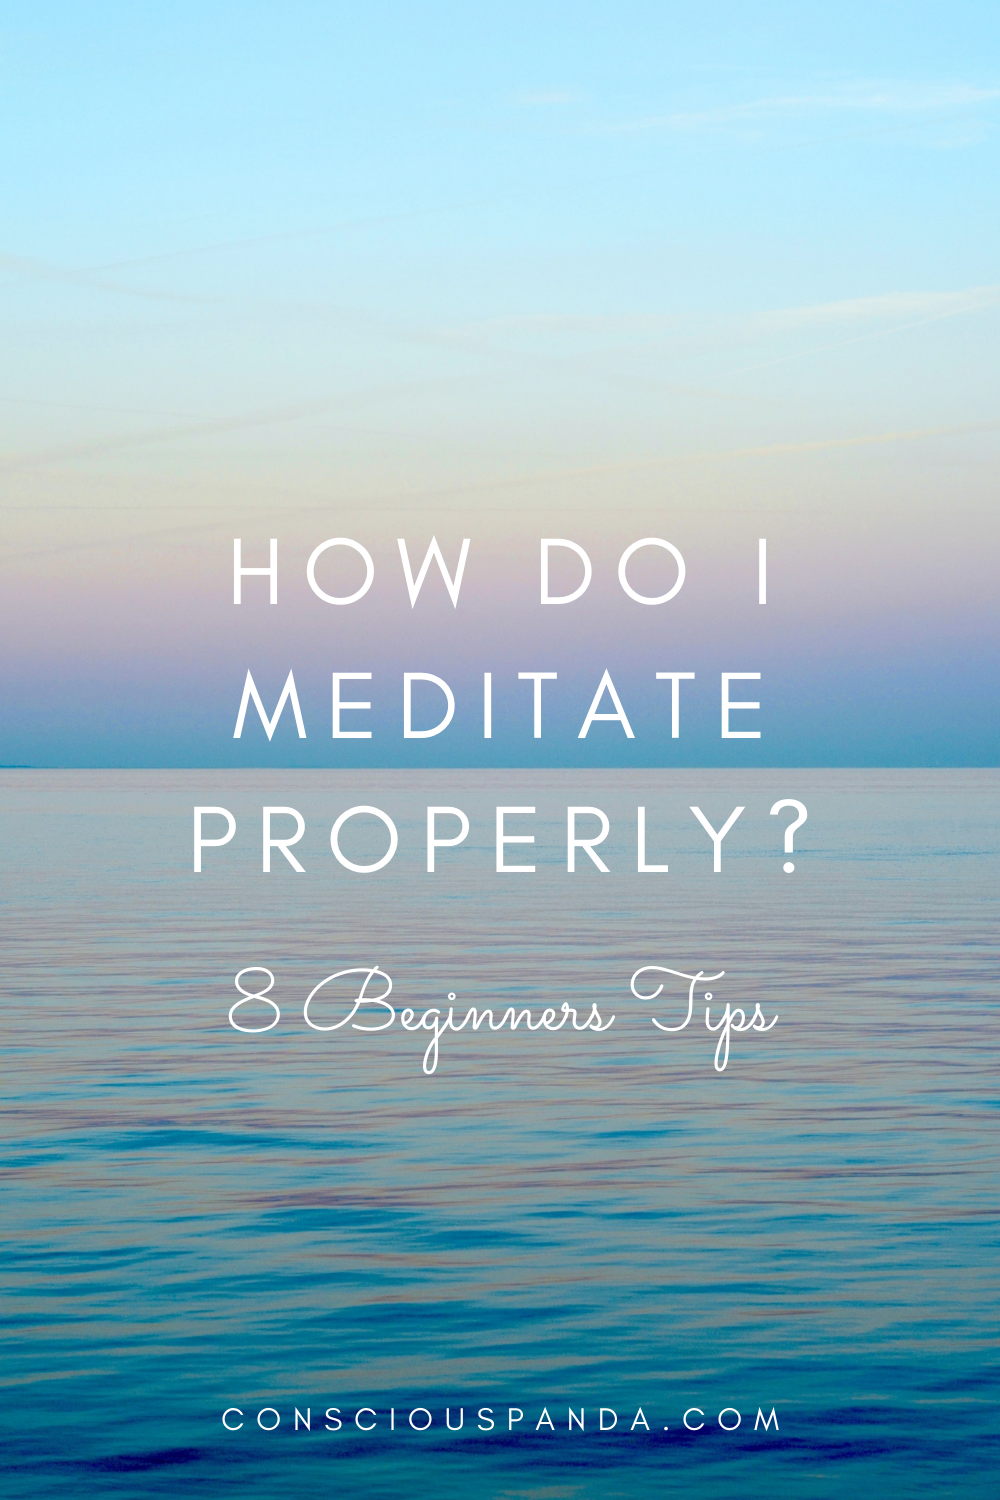 How Do I Meditate Properly? 8 Beginners Tips